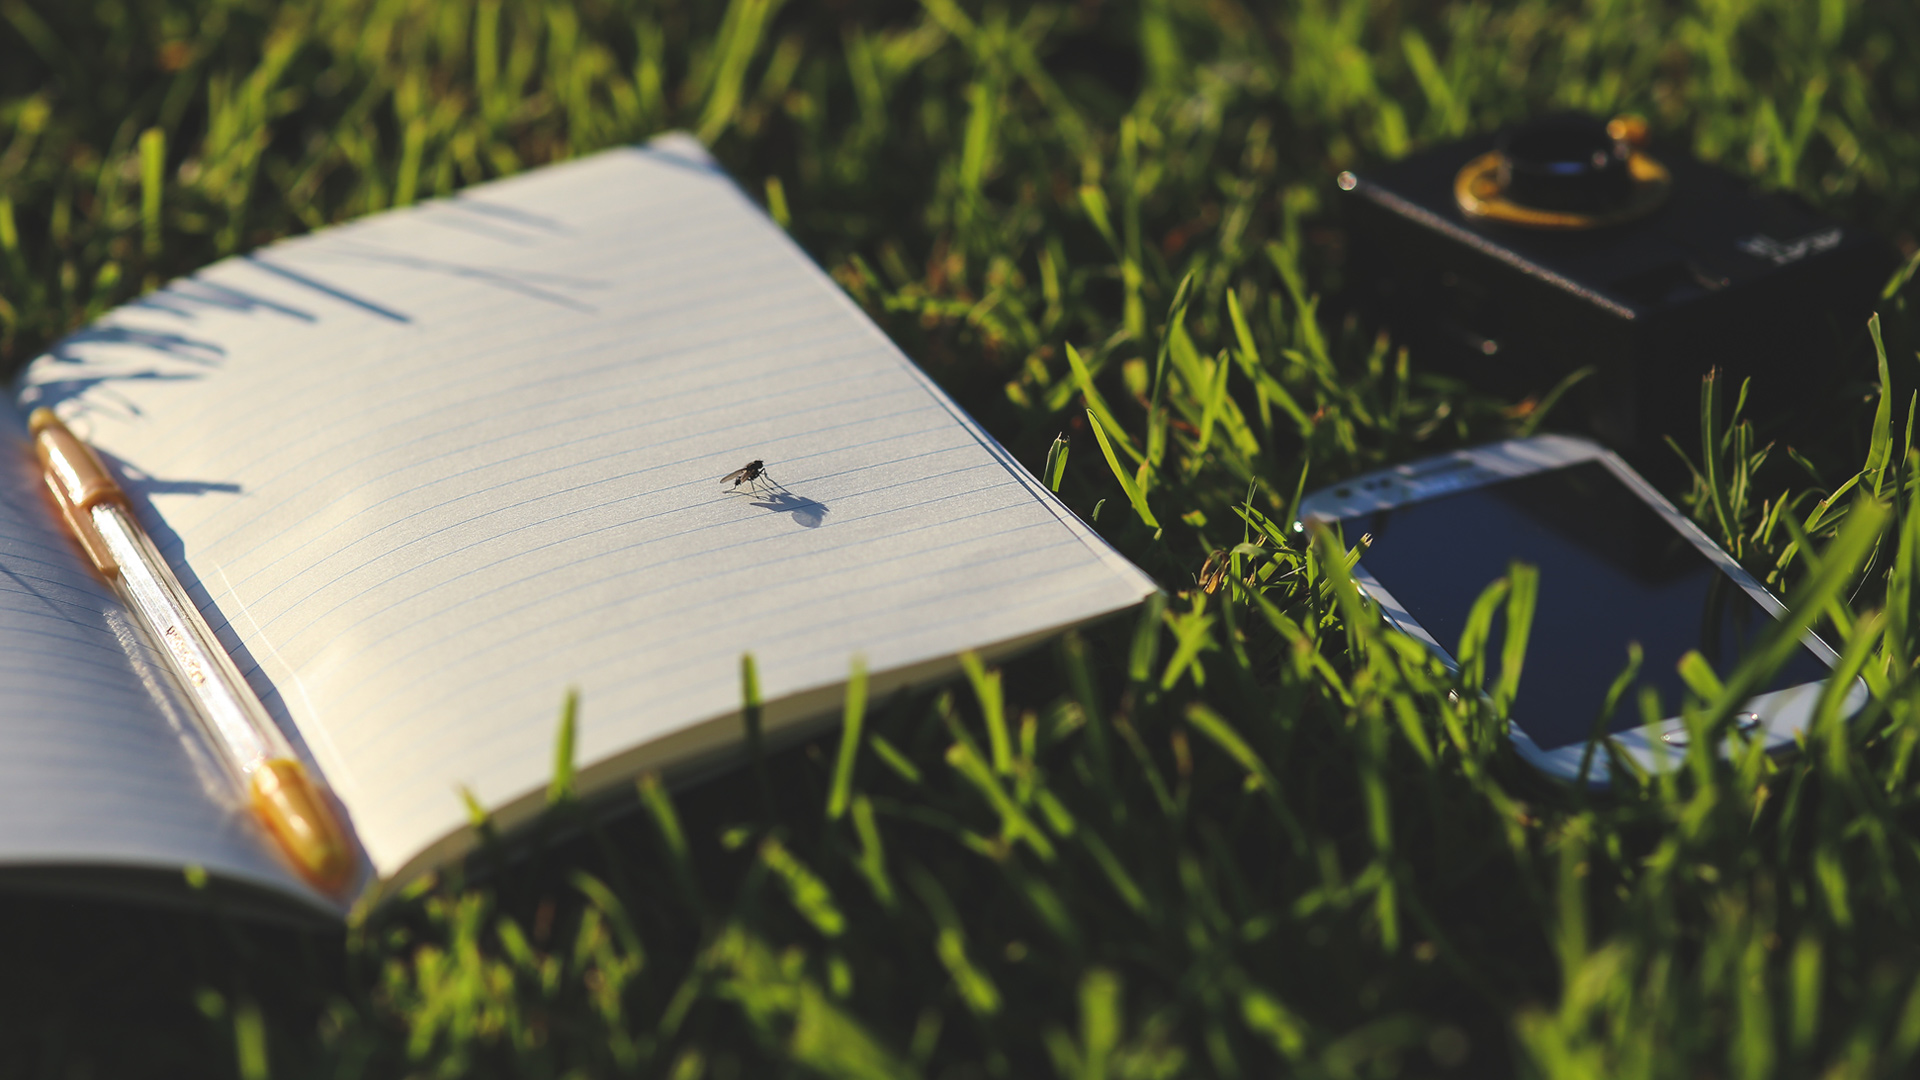 Diary in grass with phone